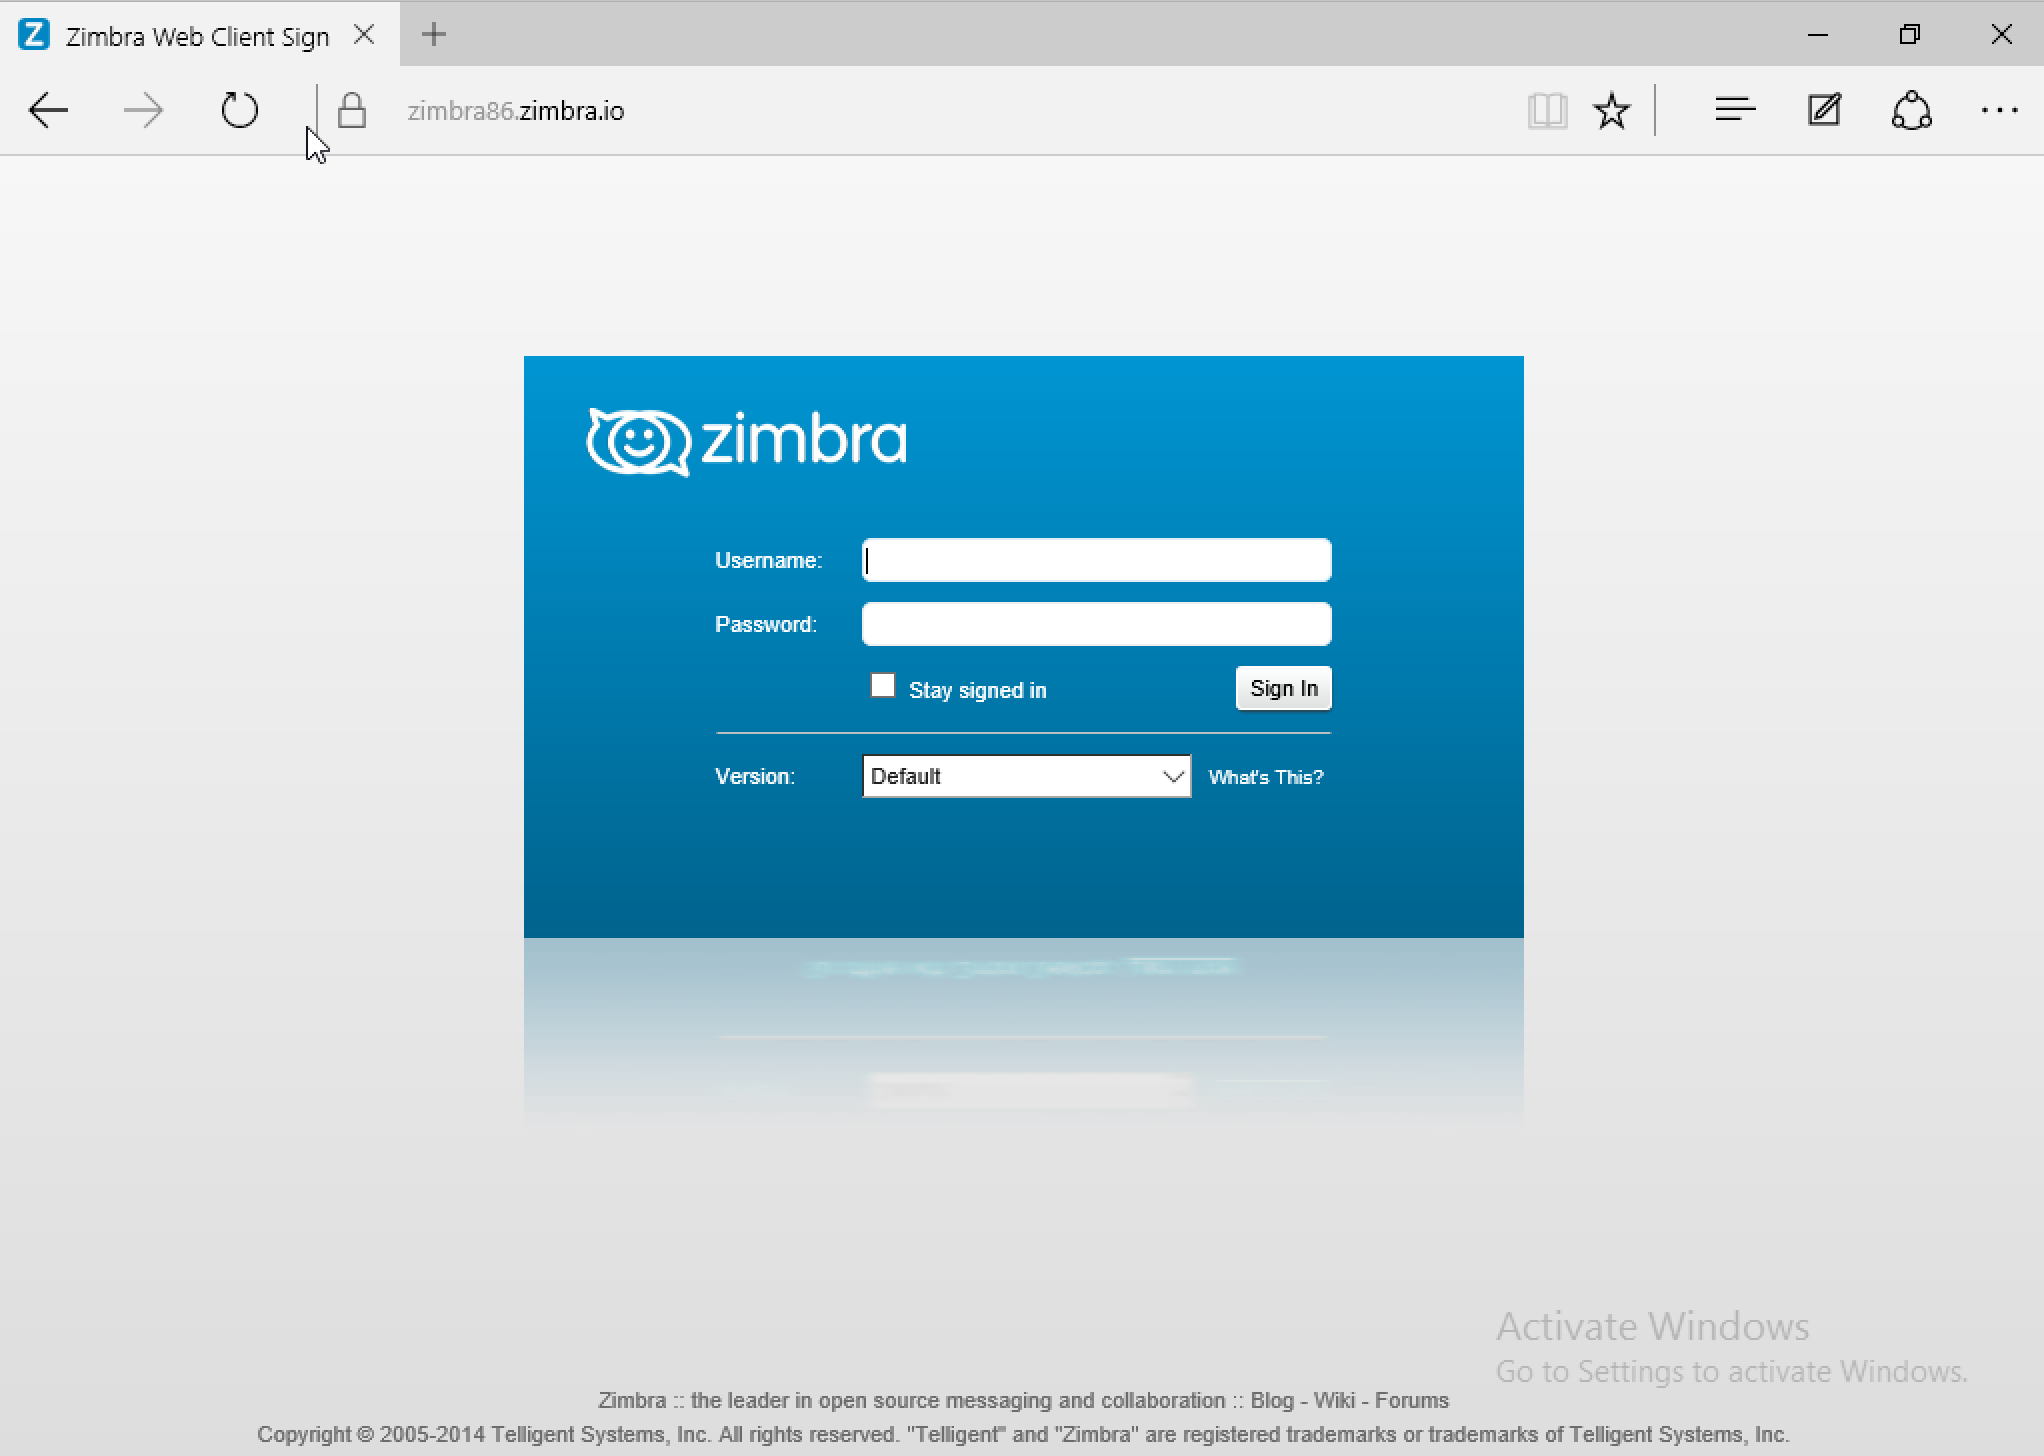 Zimbra-webclient-windows10-8.0.9-001.png